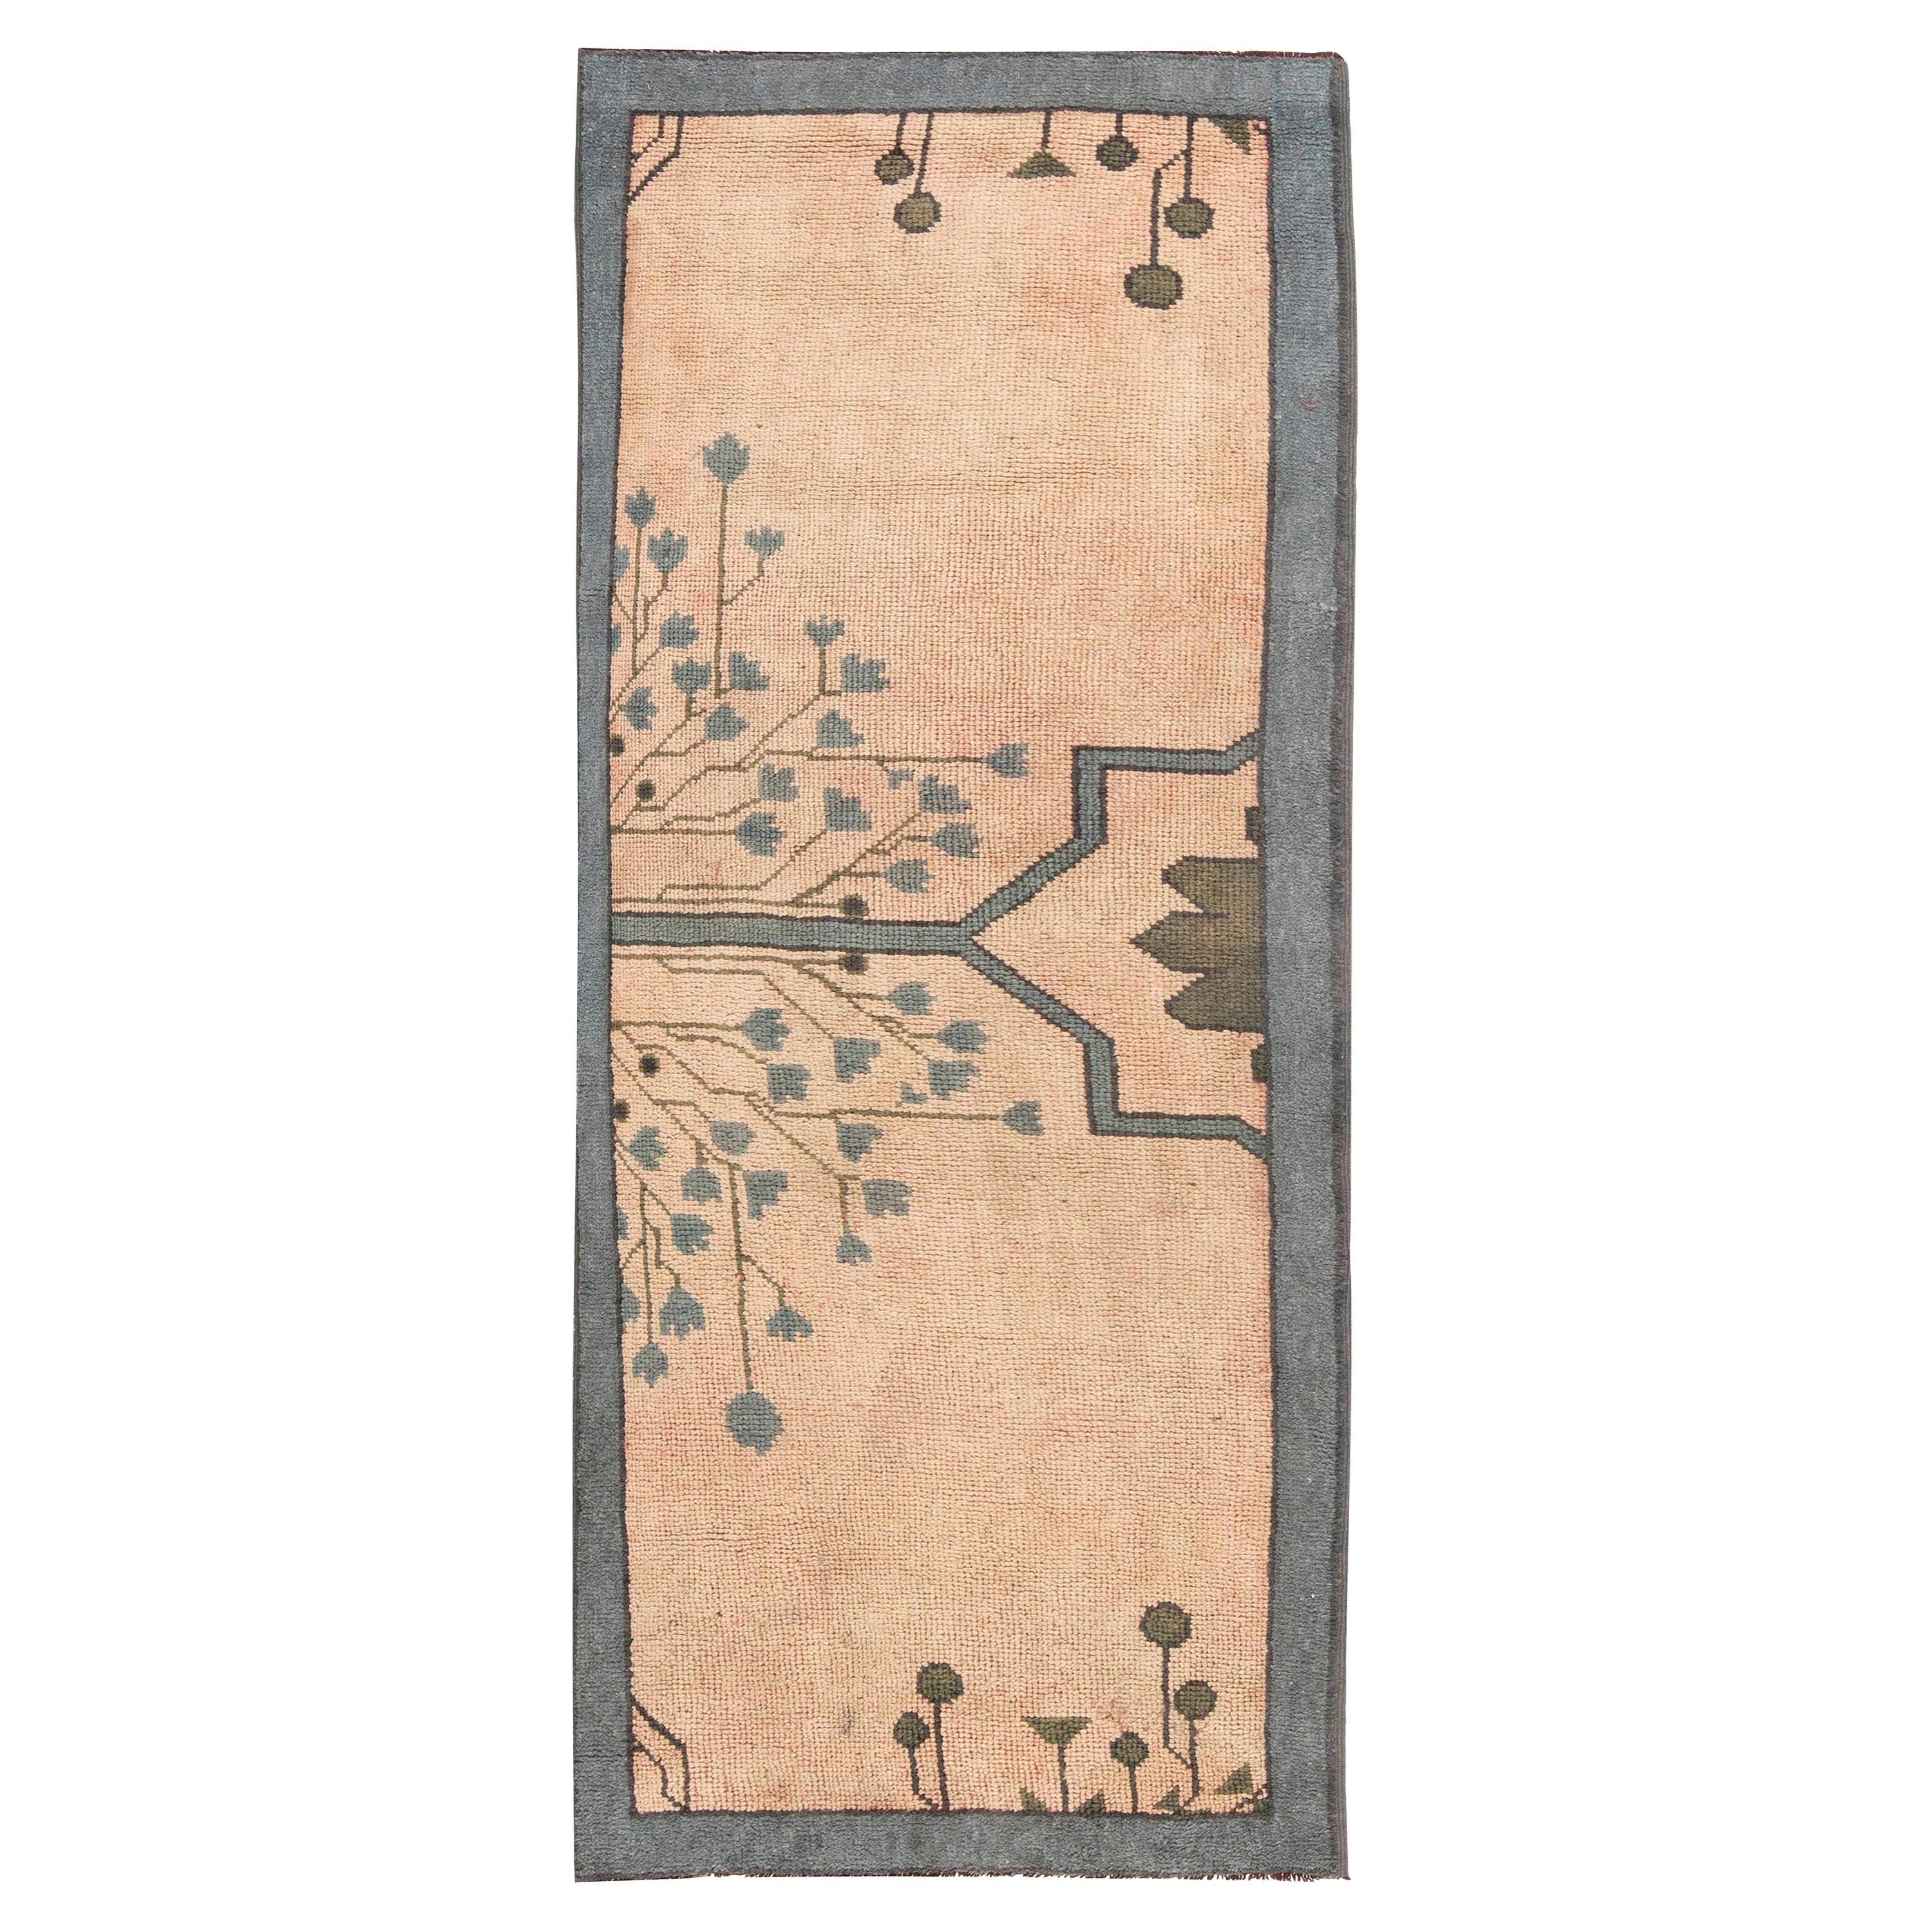 Arts & Crafts Dusty Pink, Blue and Taupe Fragment Rug by Gavin Morton